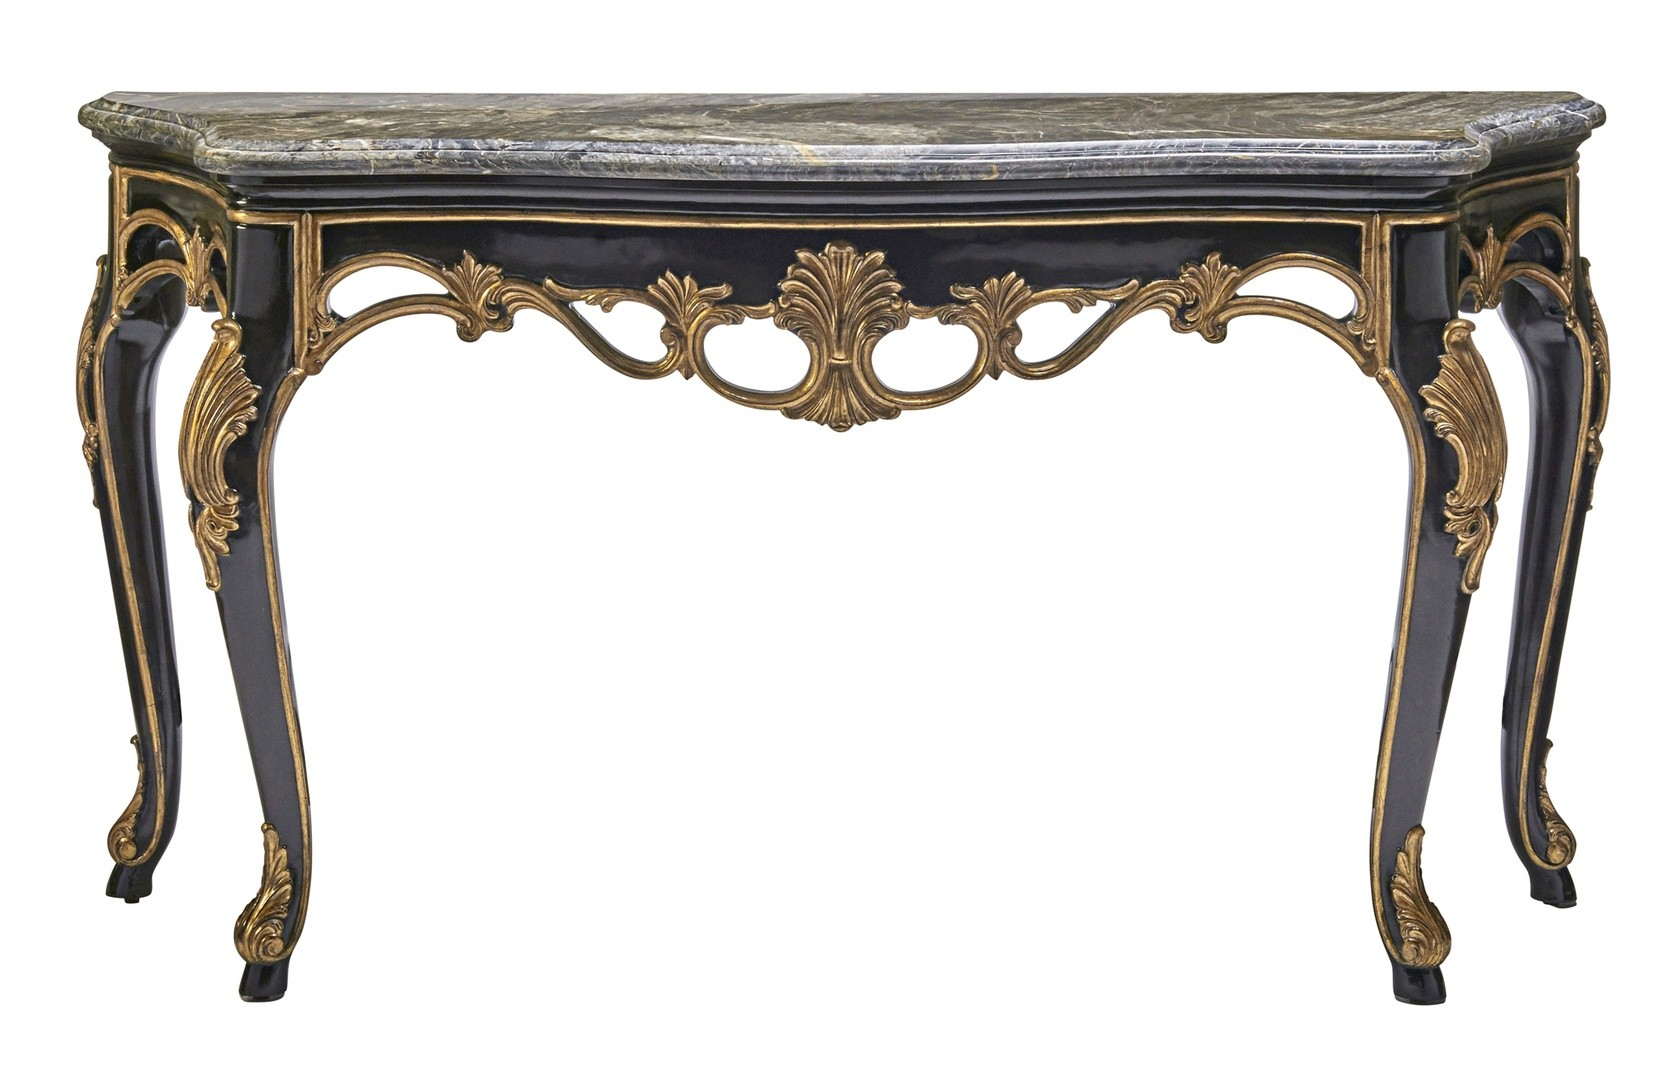 Merveilleux Console U0026 Sofa Tables Traditional Console Table With Carved Details